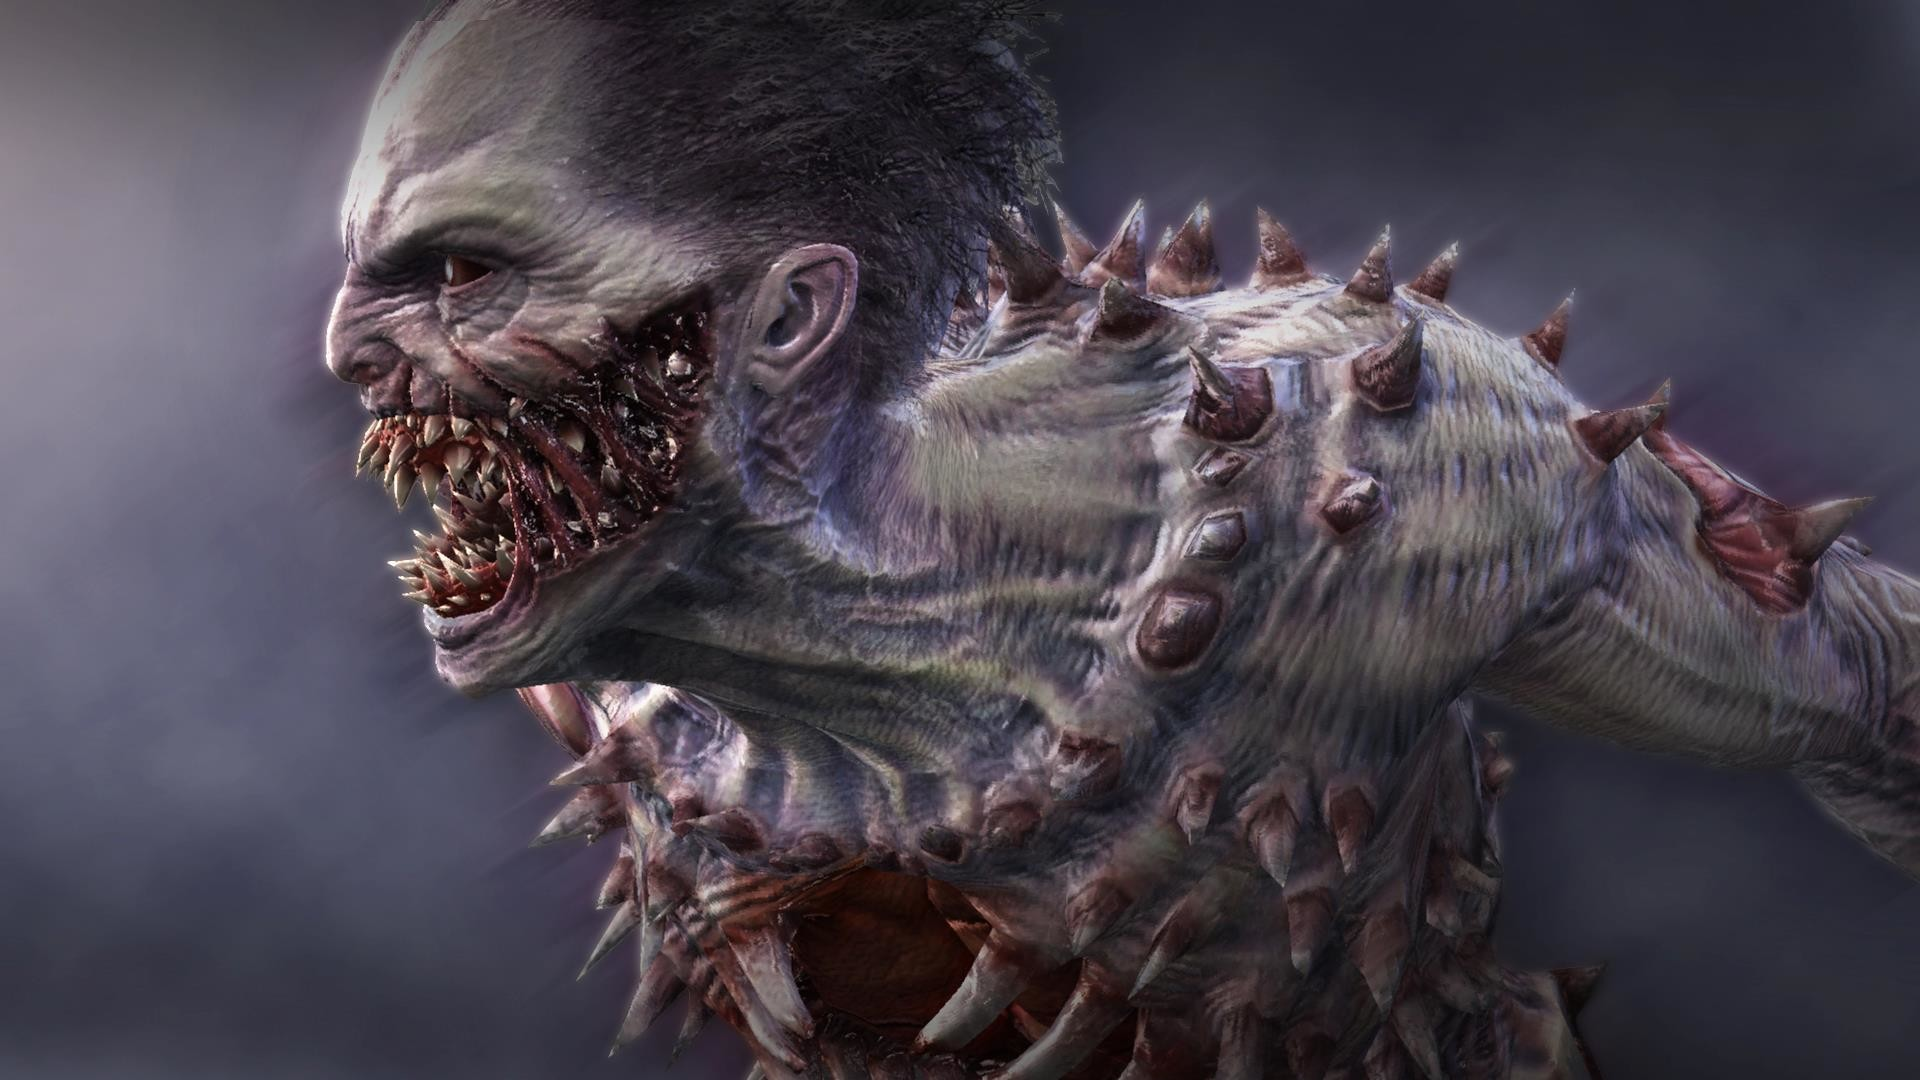 Res: 1920x1080, Video Game - Amy Distrubing Blood Scary Monster Demon Wallpaper